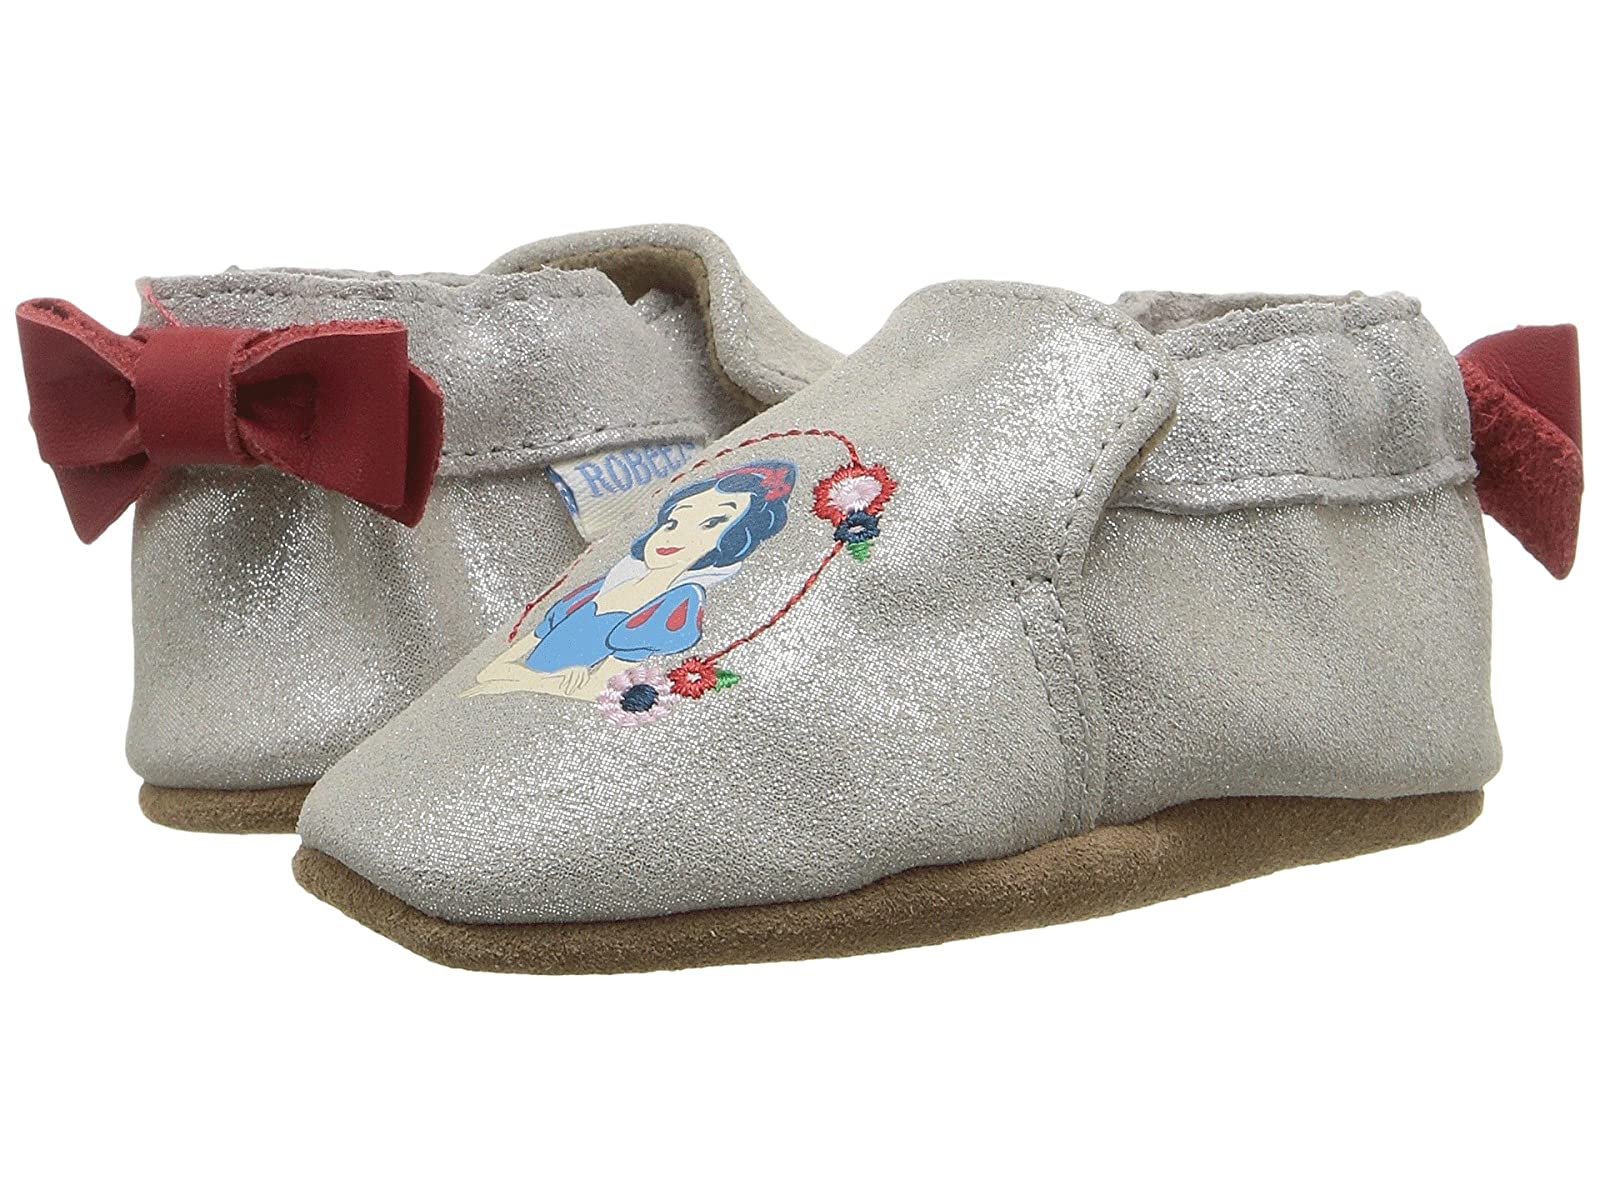 Robeez Disney® Baby by Robeez Snow White Soft Sole (Infant/Toddler)Atmospheric grades have affordable shoes